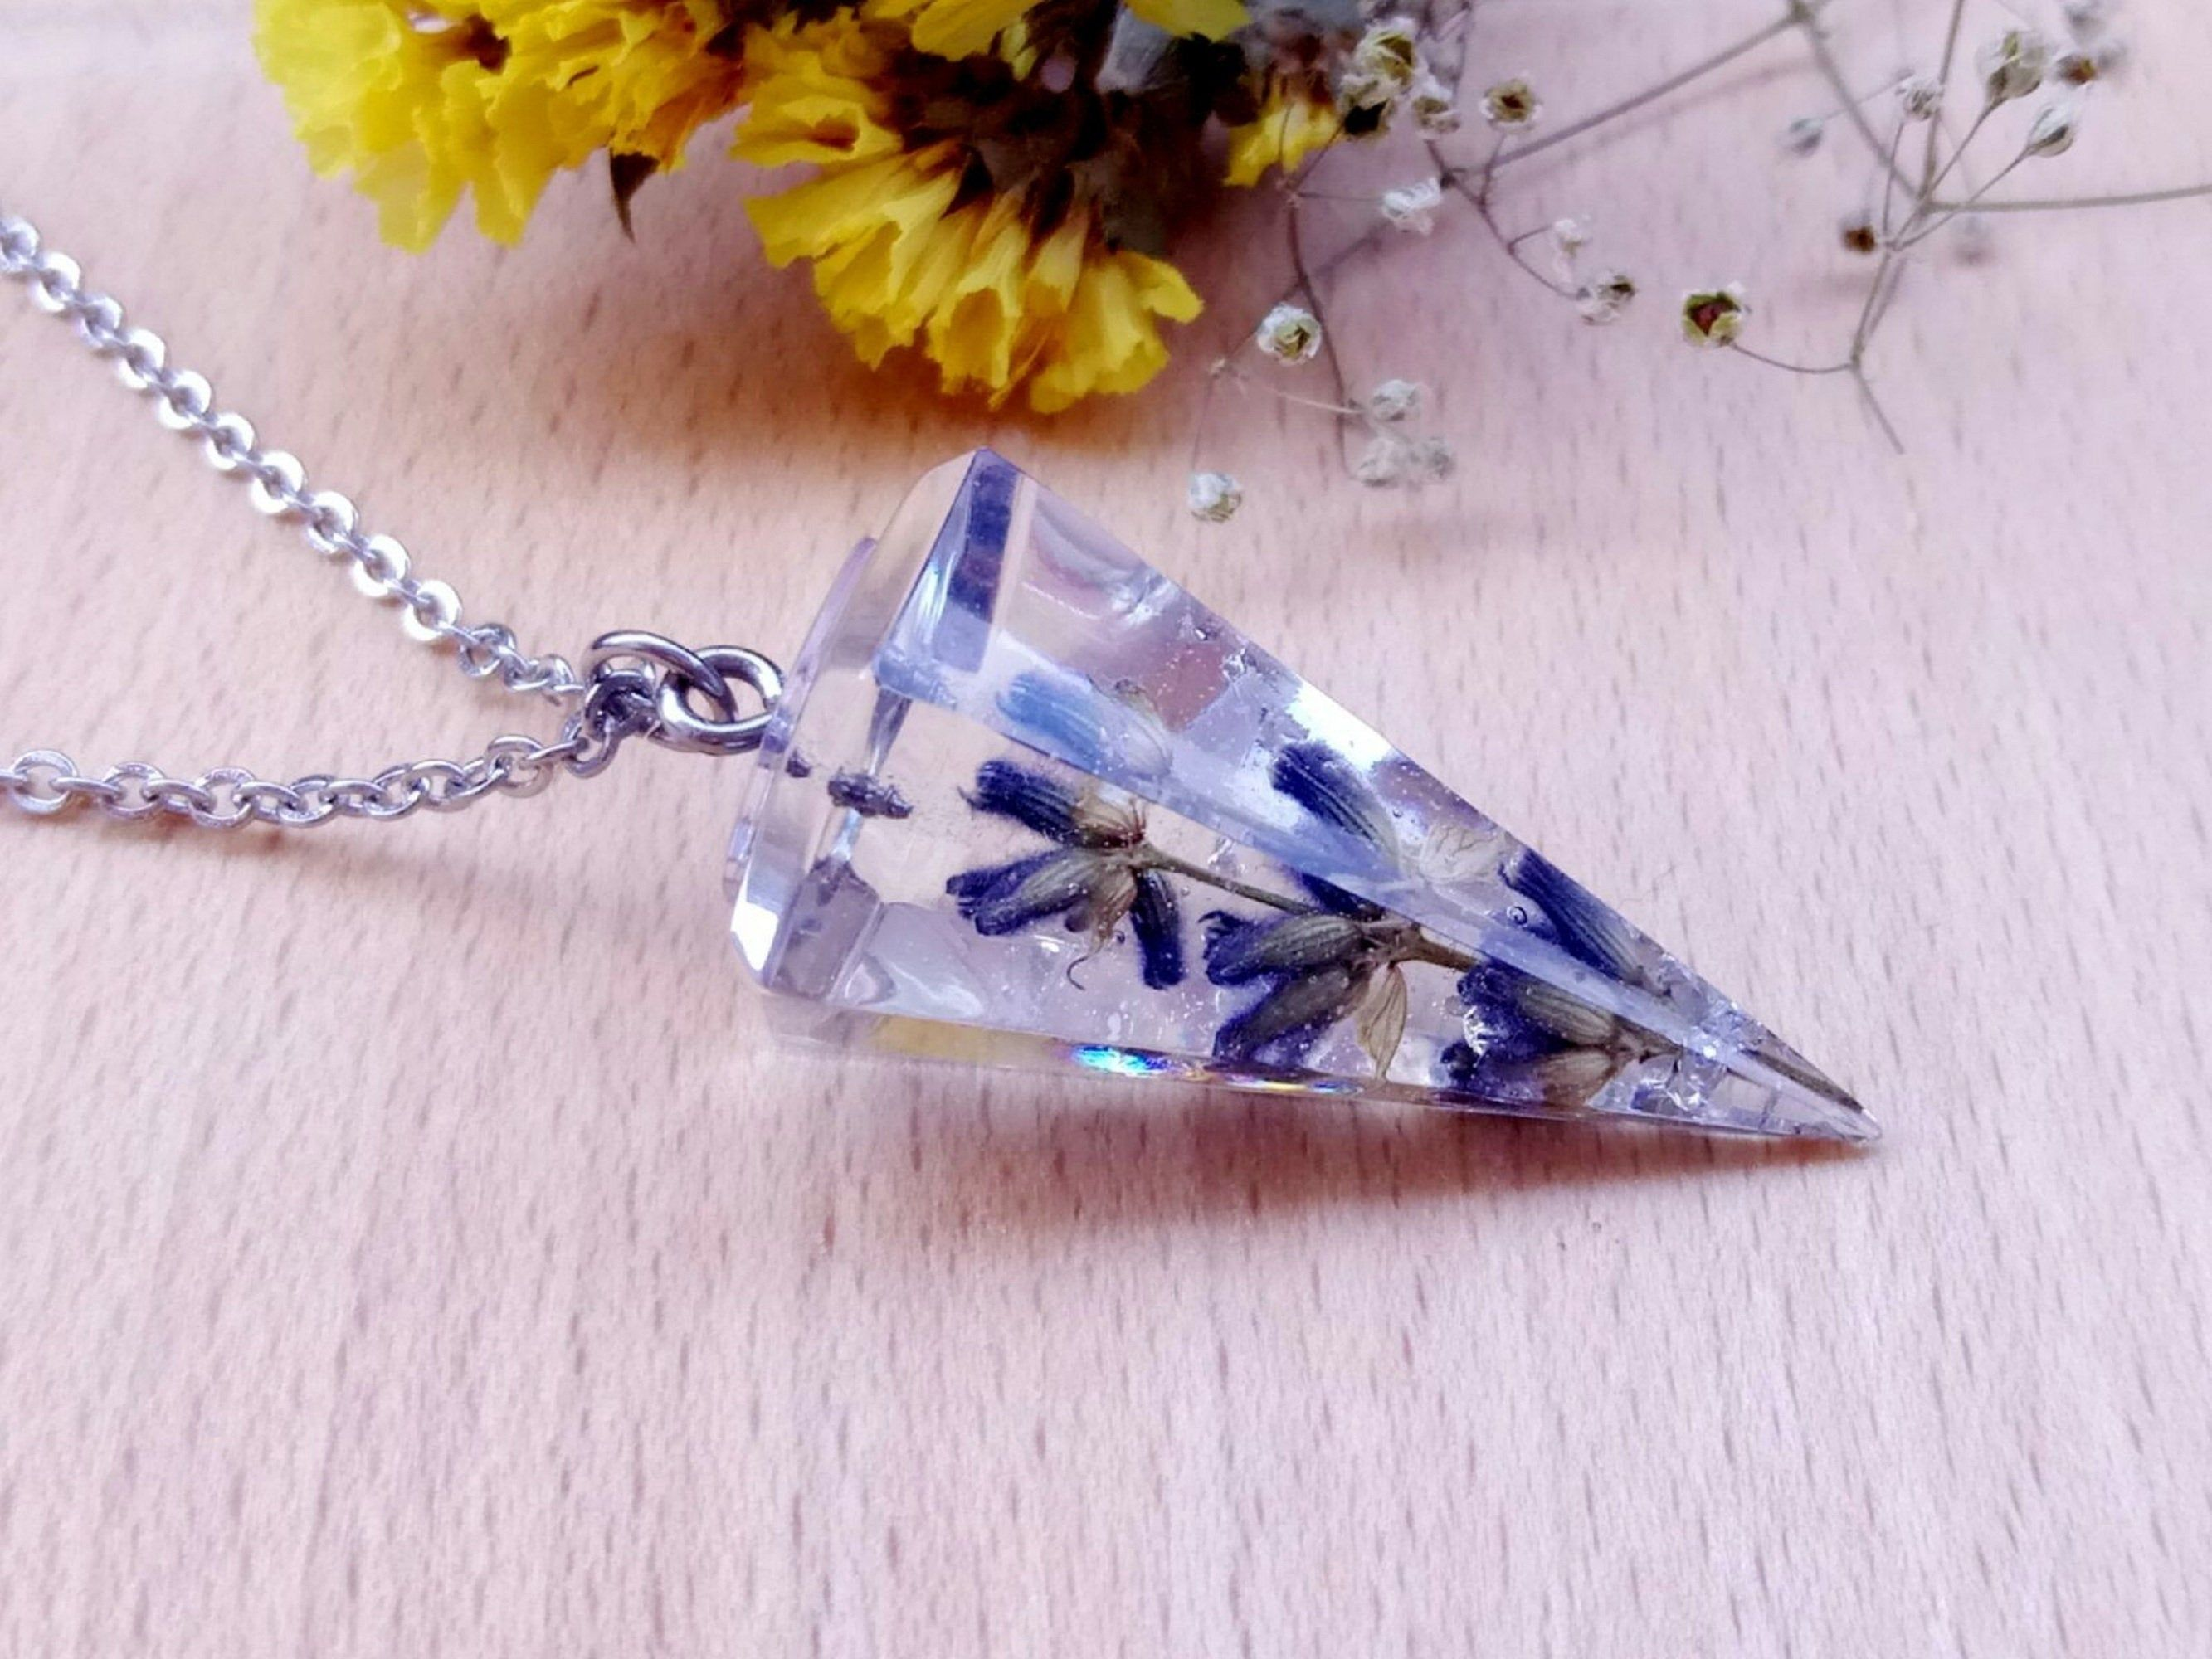 Lavender Necklace Real Flower Necklace Dried Flower Jewelry In 2020 Dried Flower Jewelry Lavender Necklace Flower Jewellery